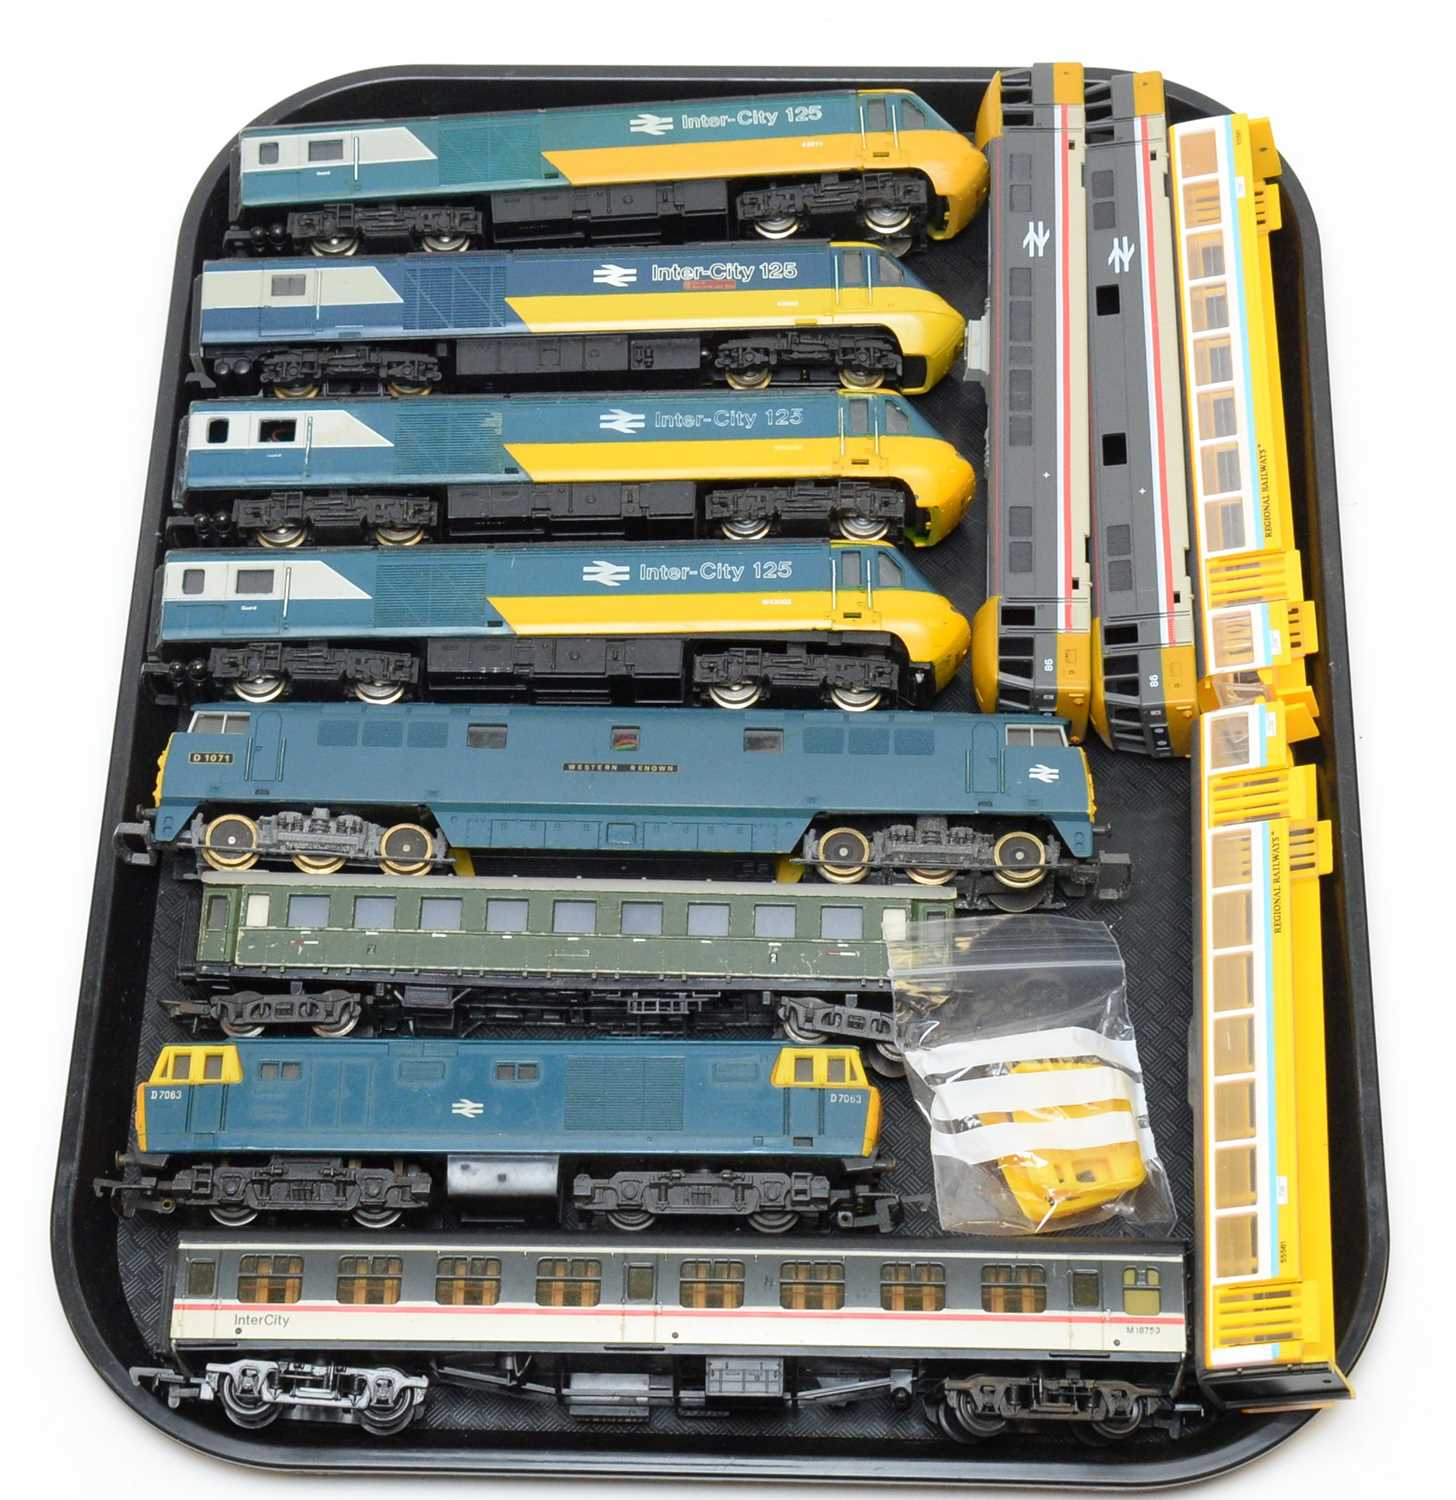 Unboxed Inter-City trains and carriages.